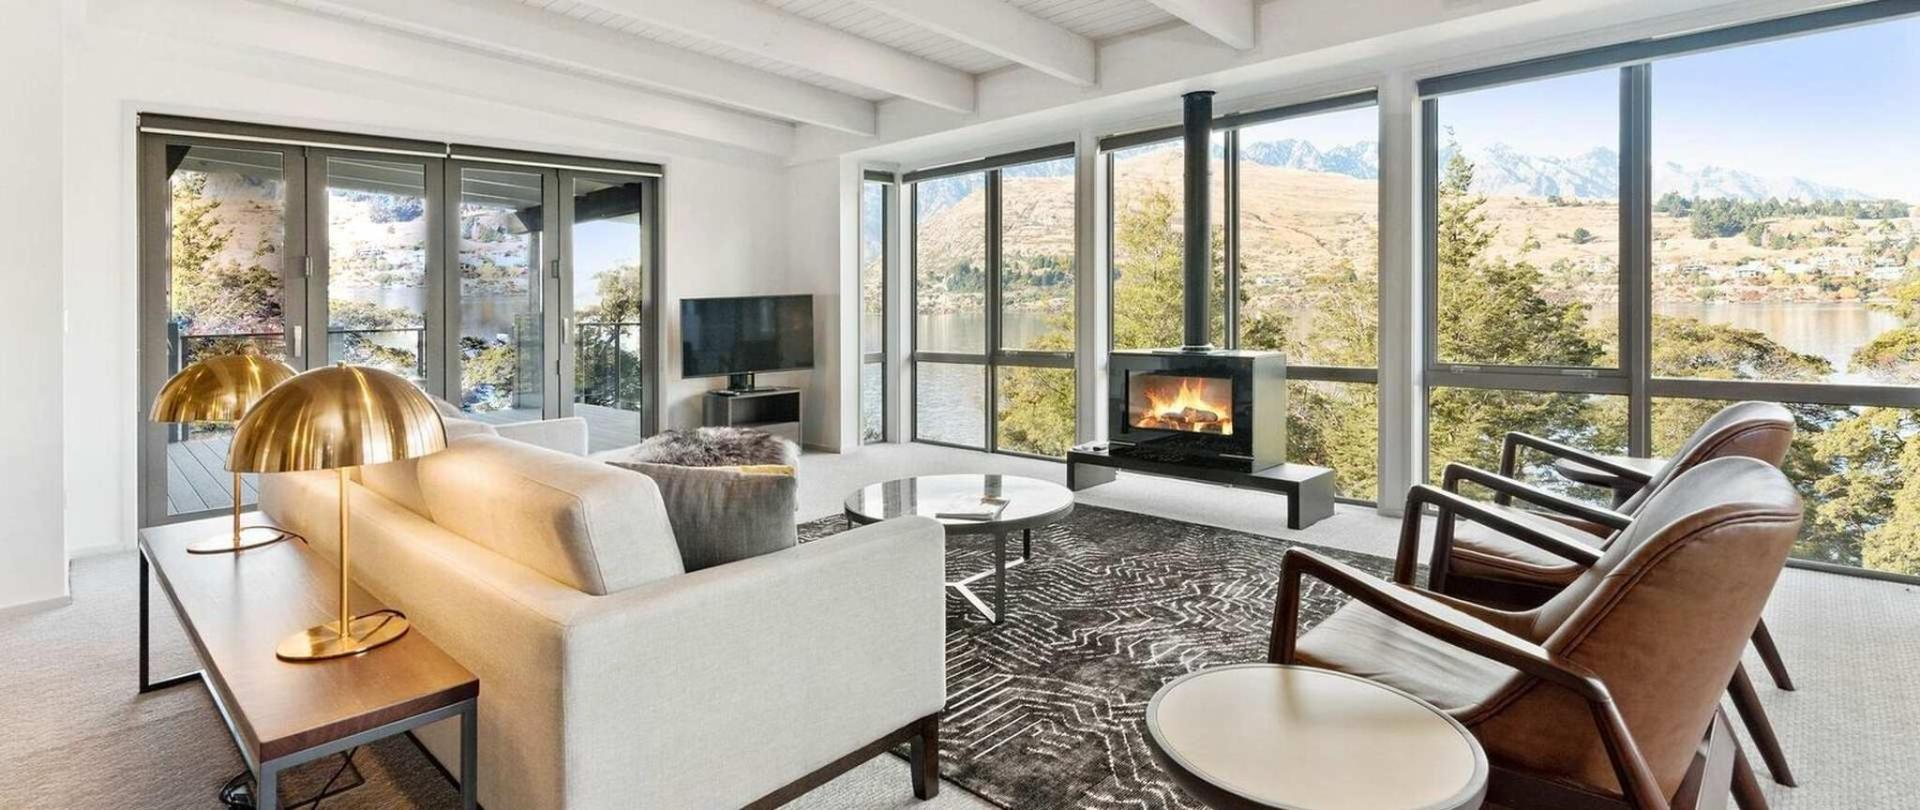 The Rees Hotel Luxury Apartments Queenstown New Zealand